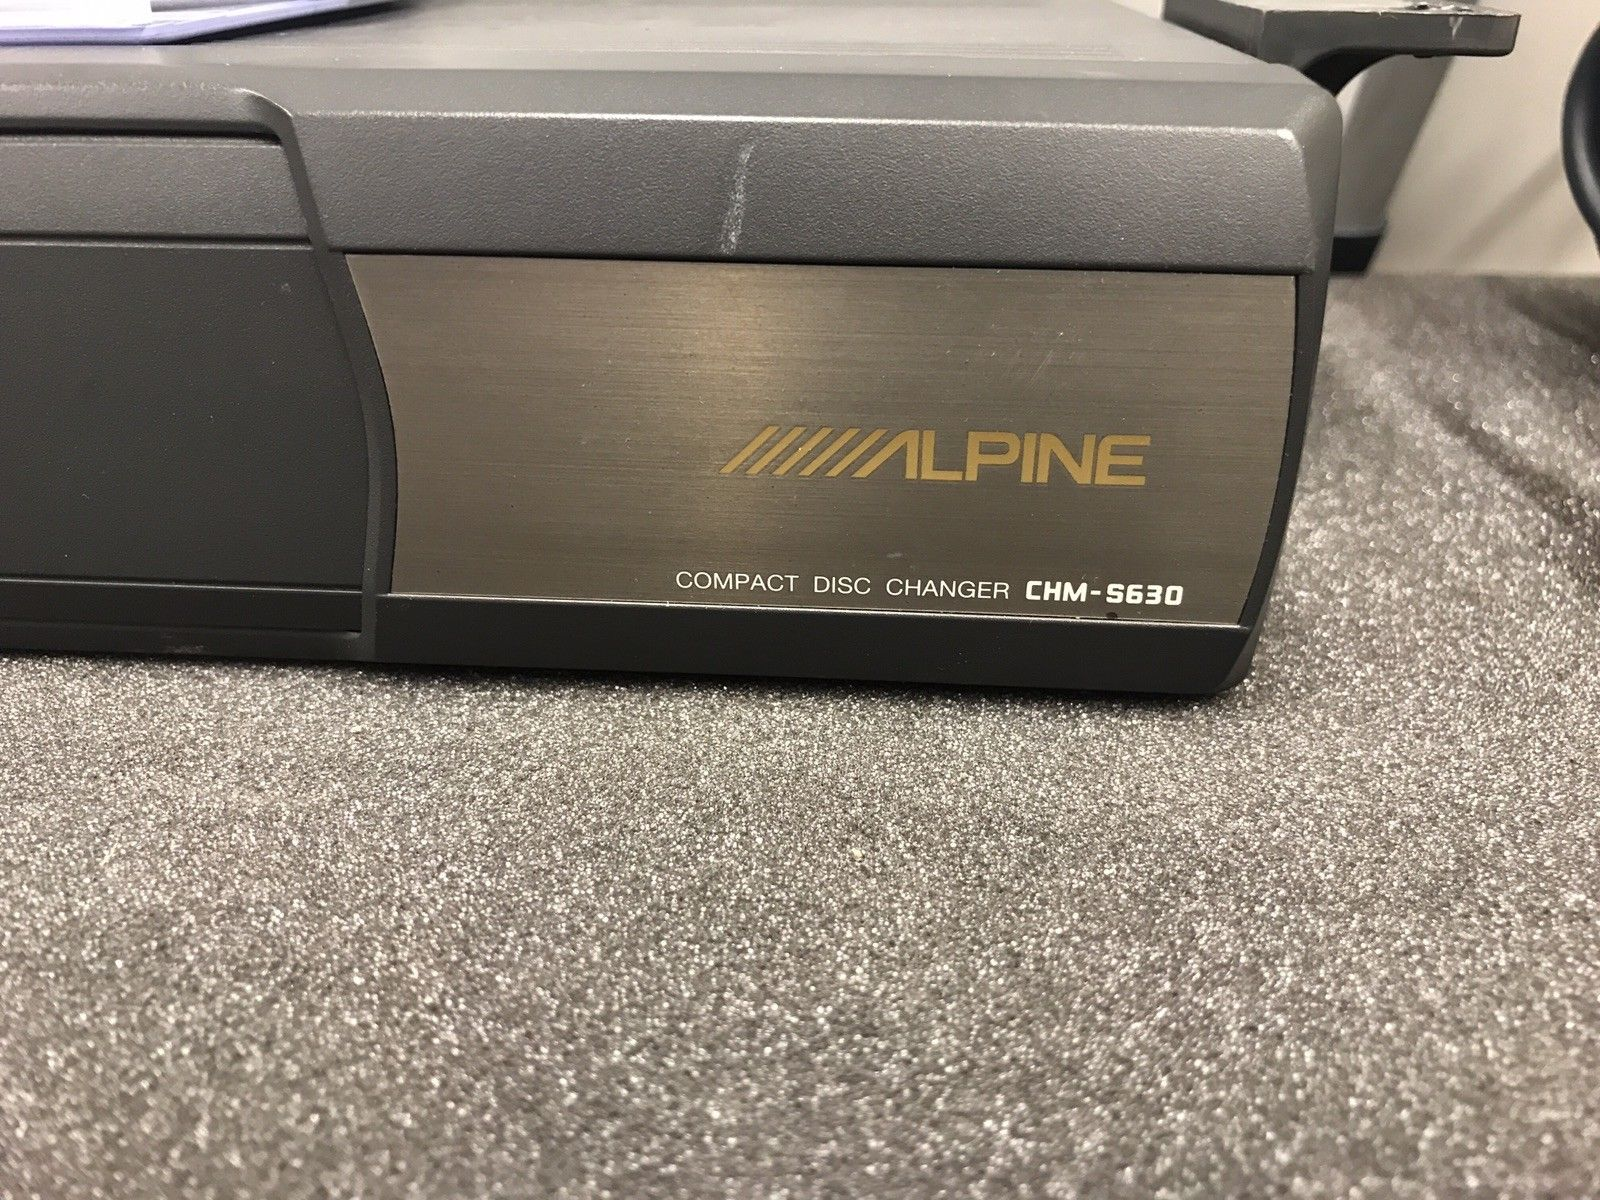 Alpine Add On M Bus 8 Pin Car Radio Stereo 6 Disc Plug In Cd Changer Chm-S630